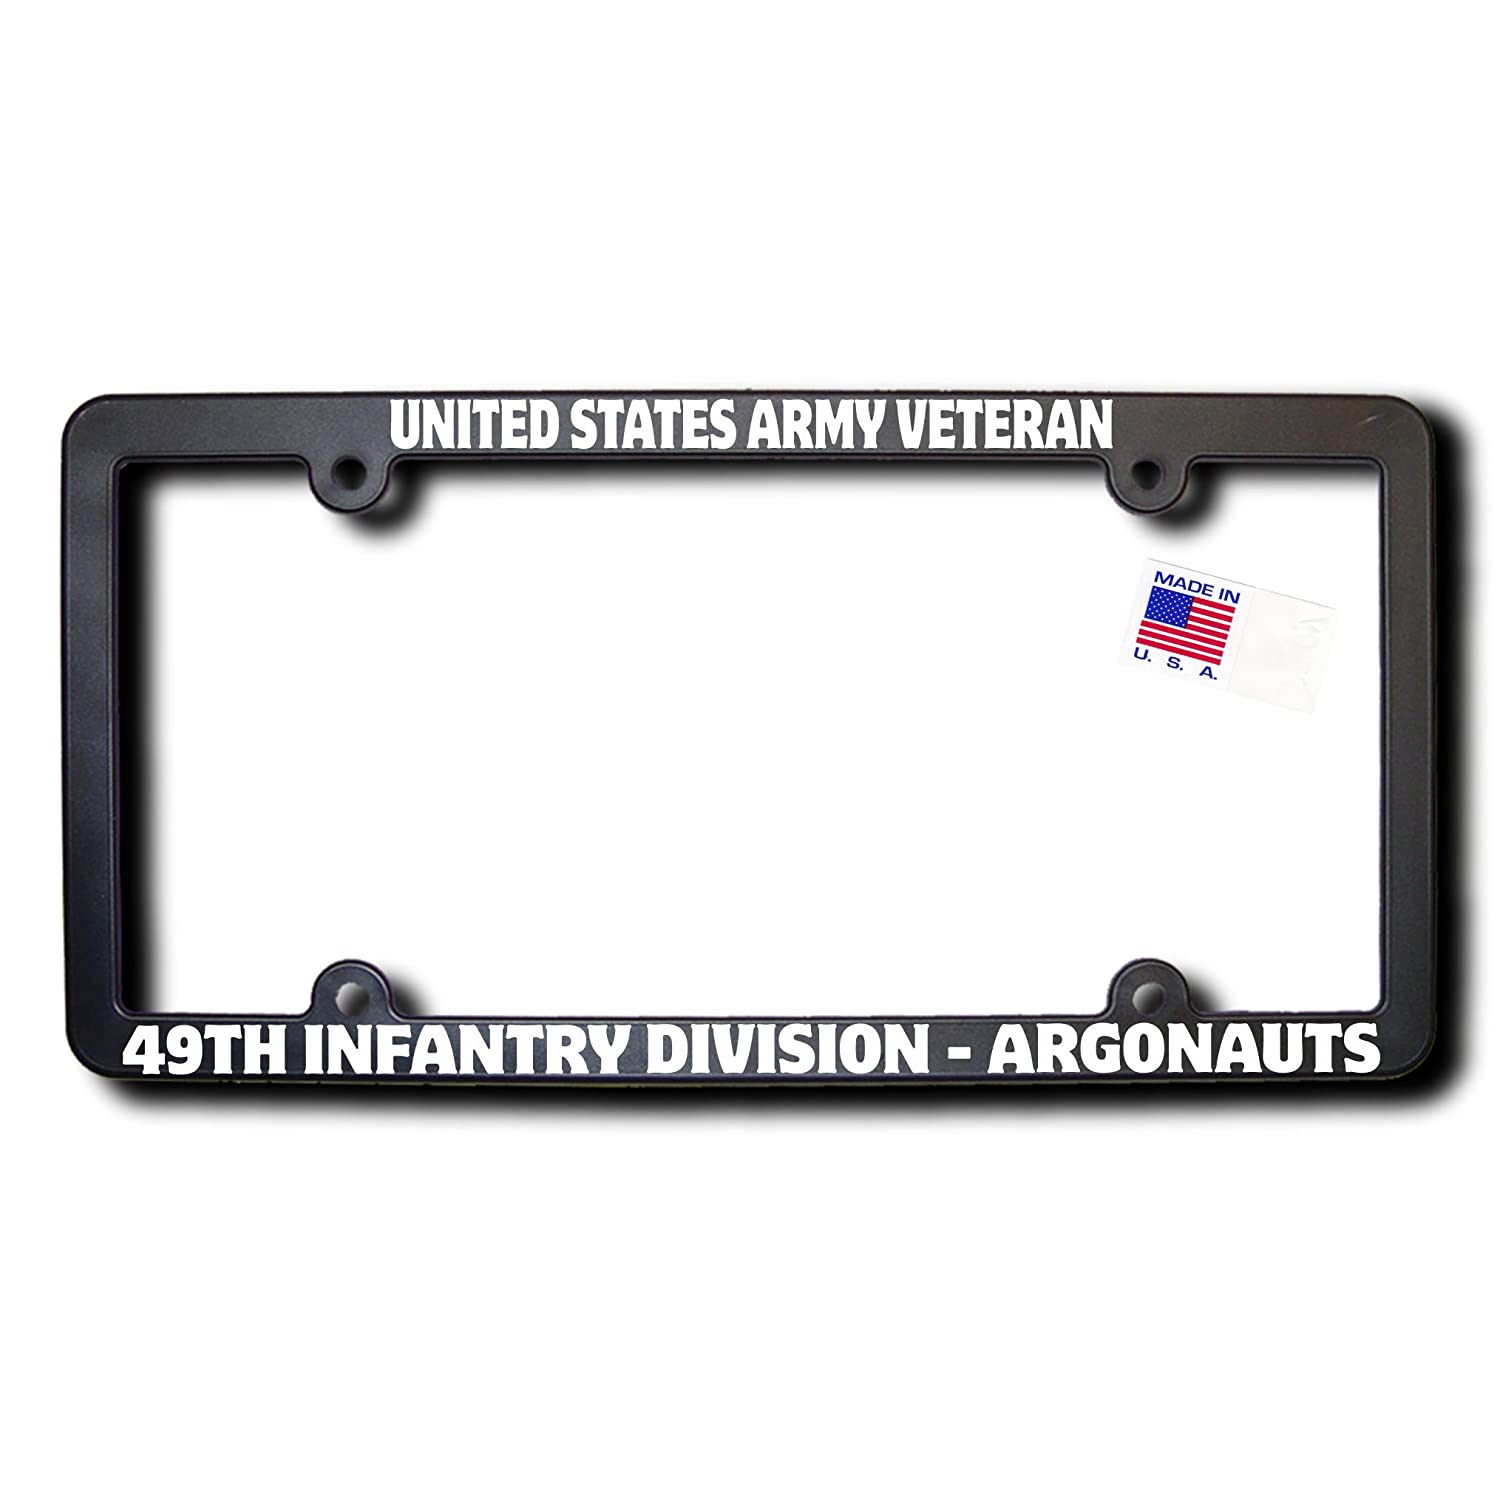 49TH INFANTRY DIVISION - ARGONAUTS License Frame w/REFLECTIVE TEXT